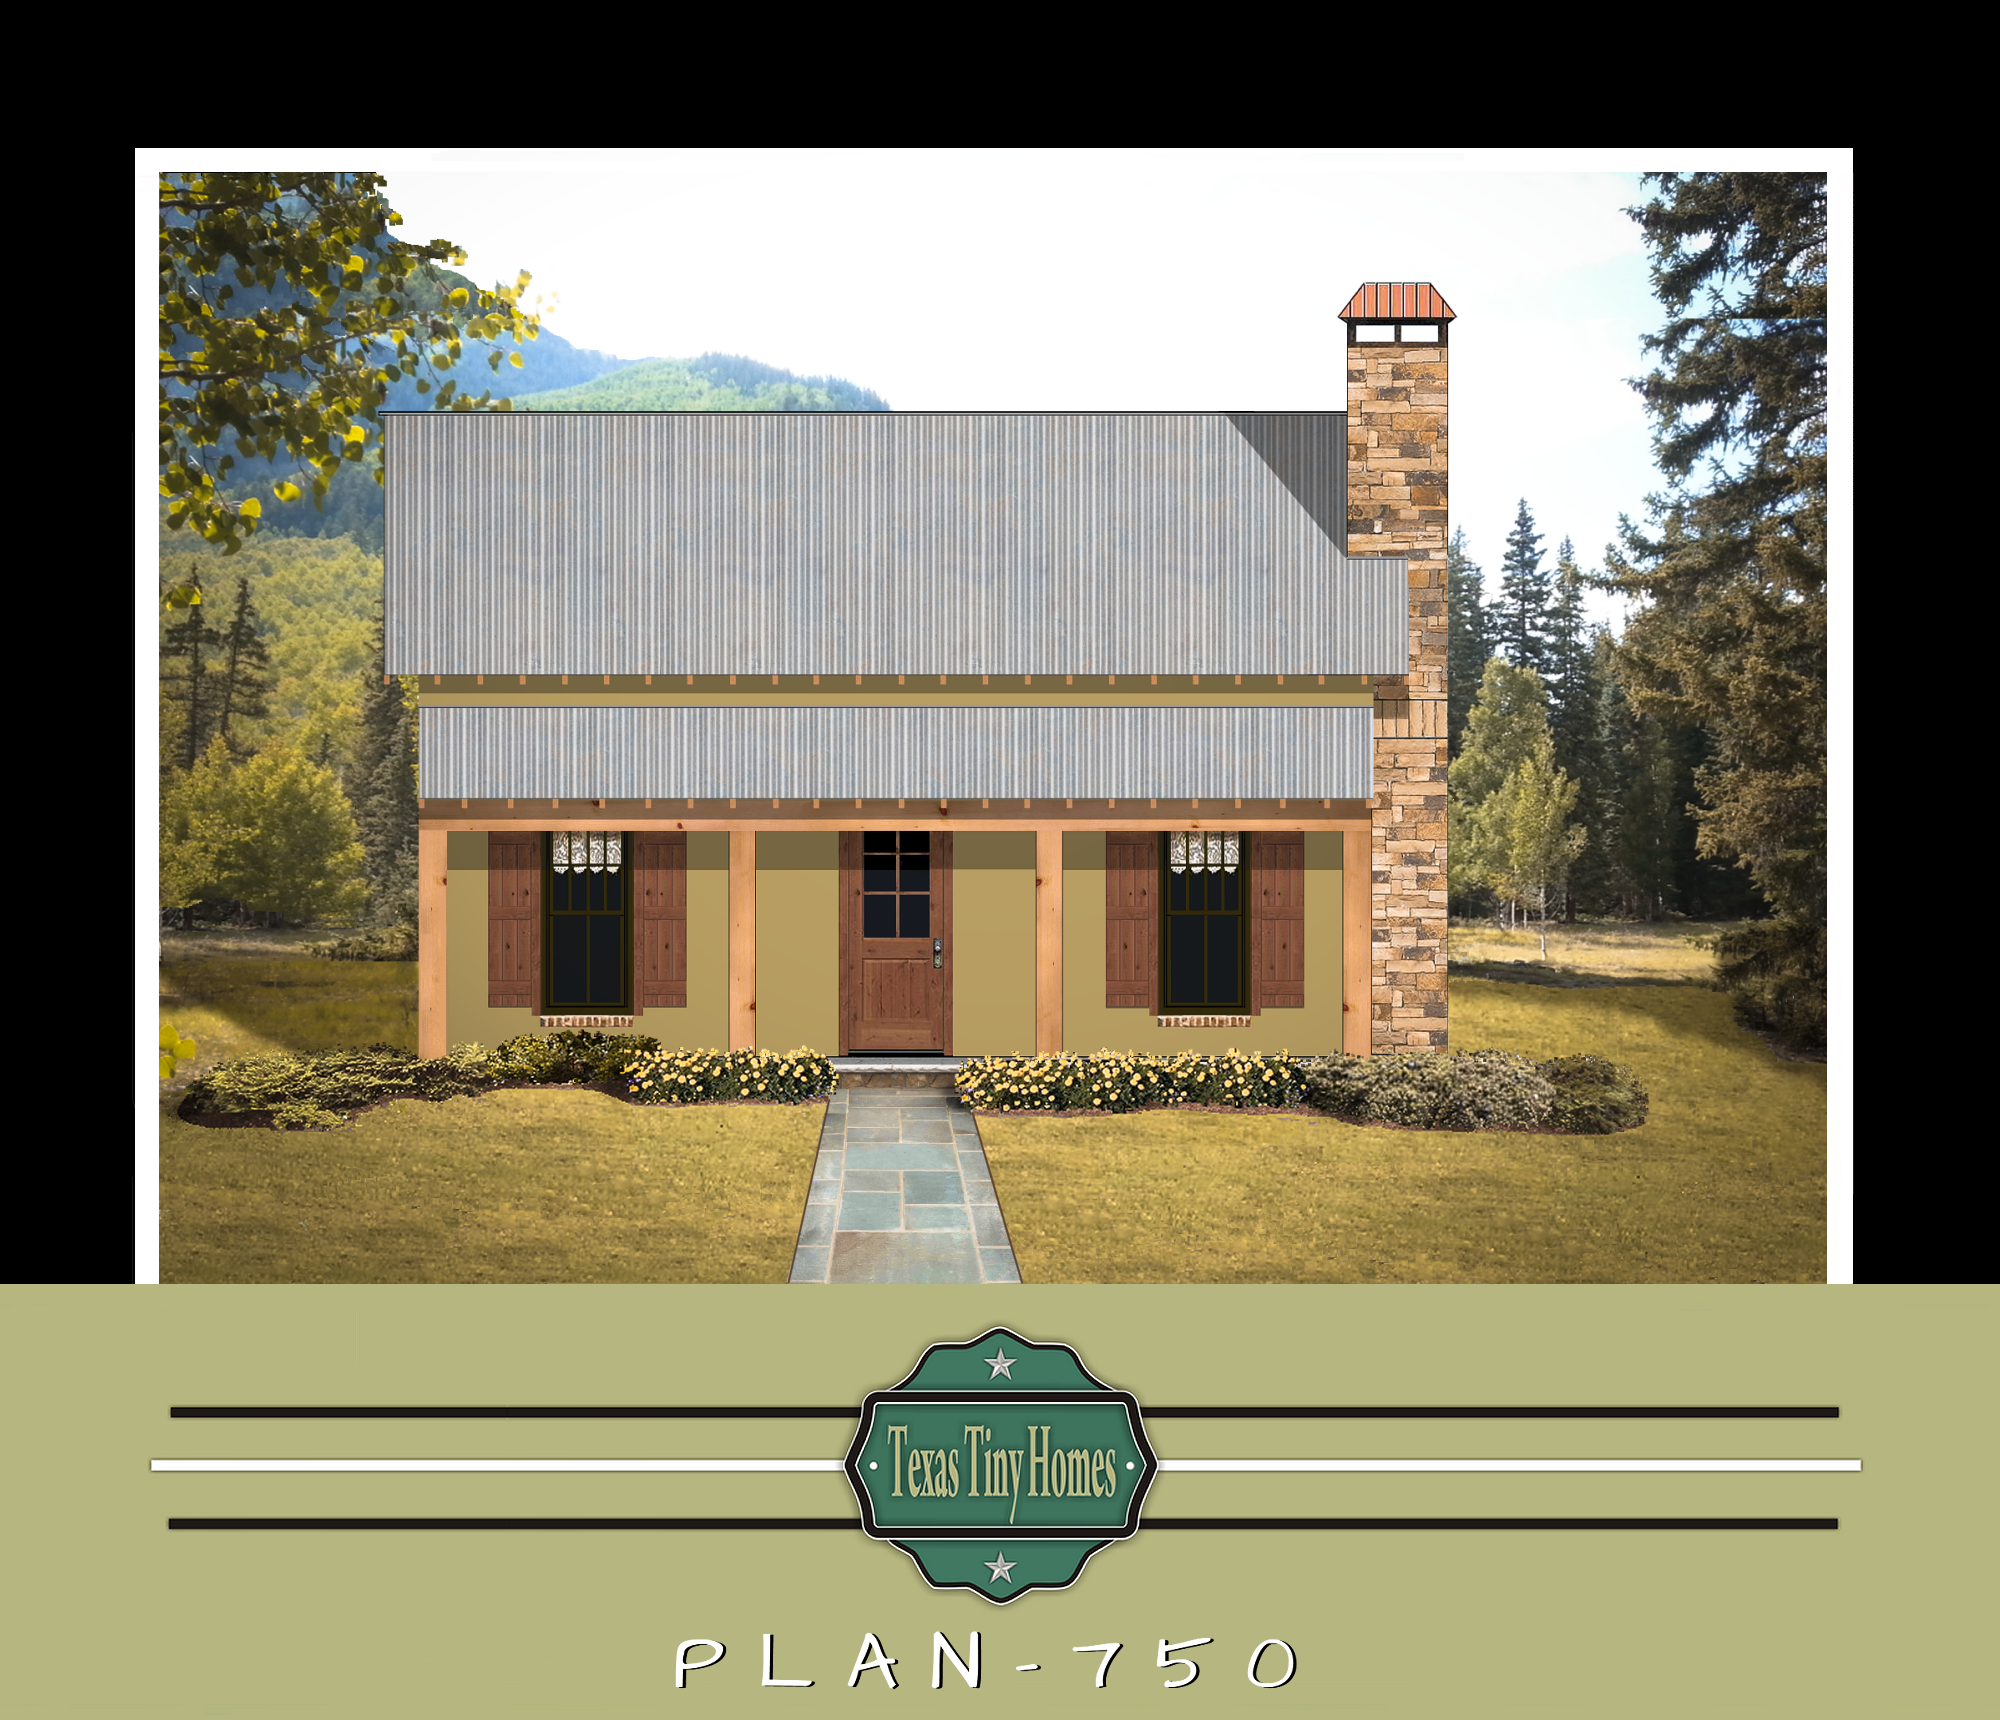 Texas tiny homes plan 750 Small house blueprint